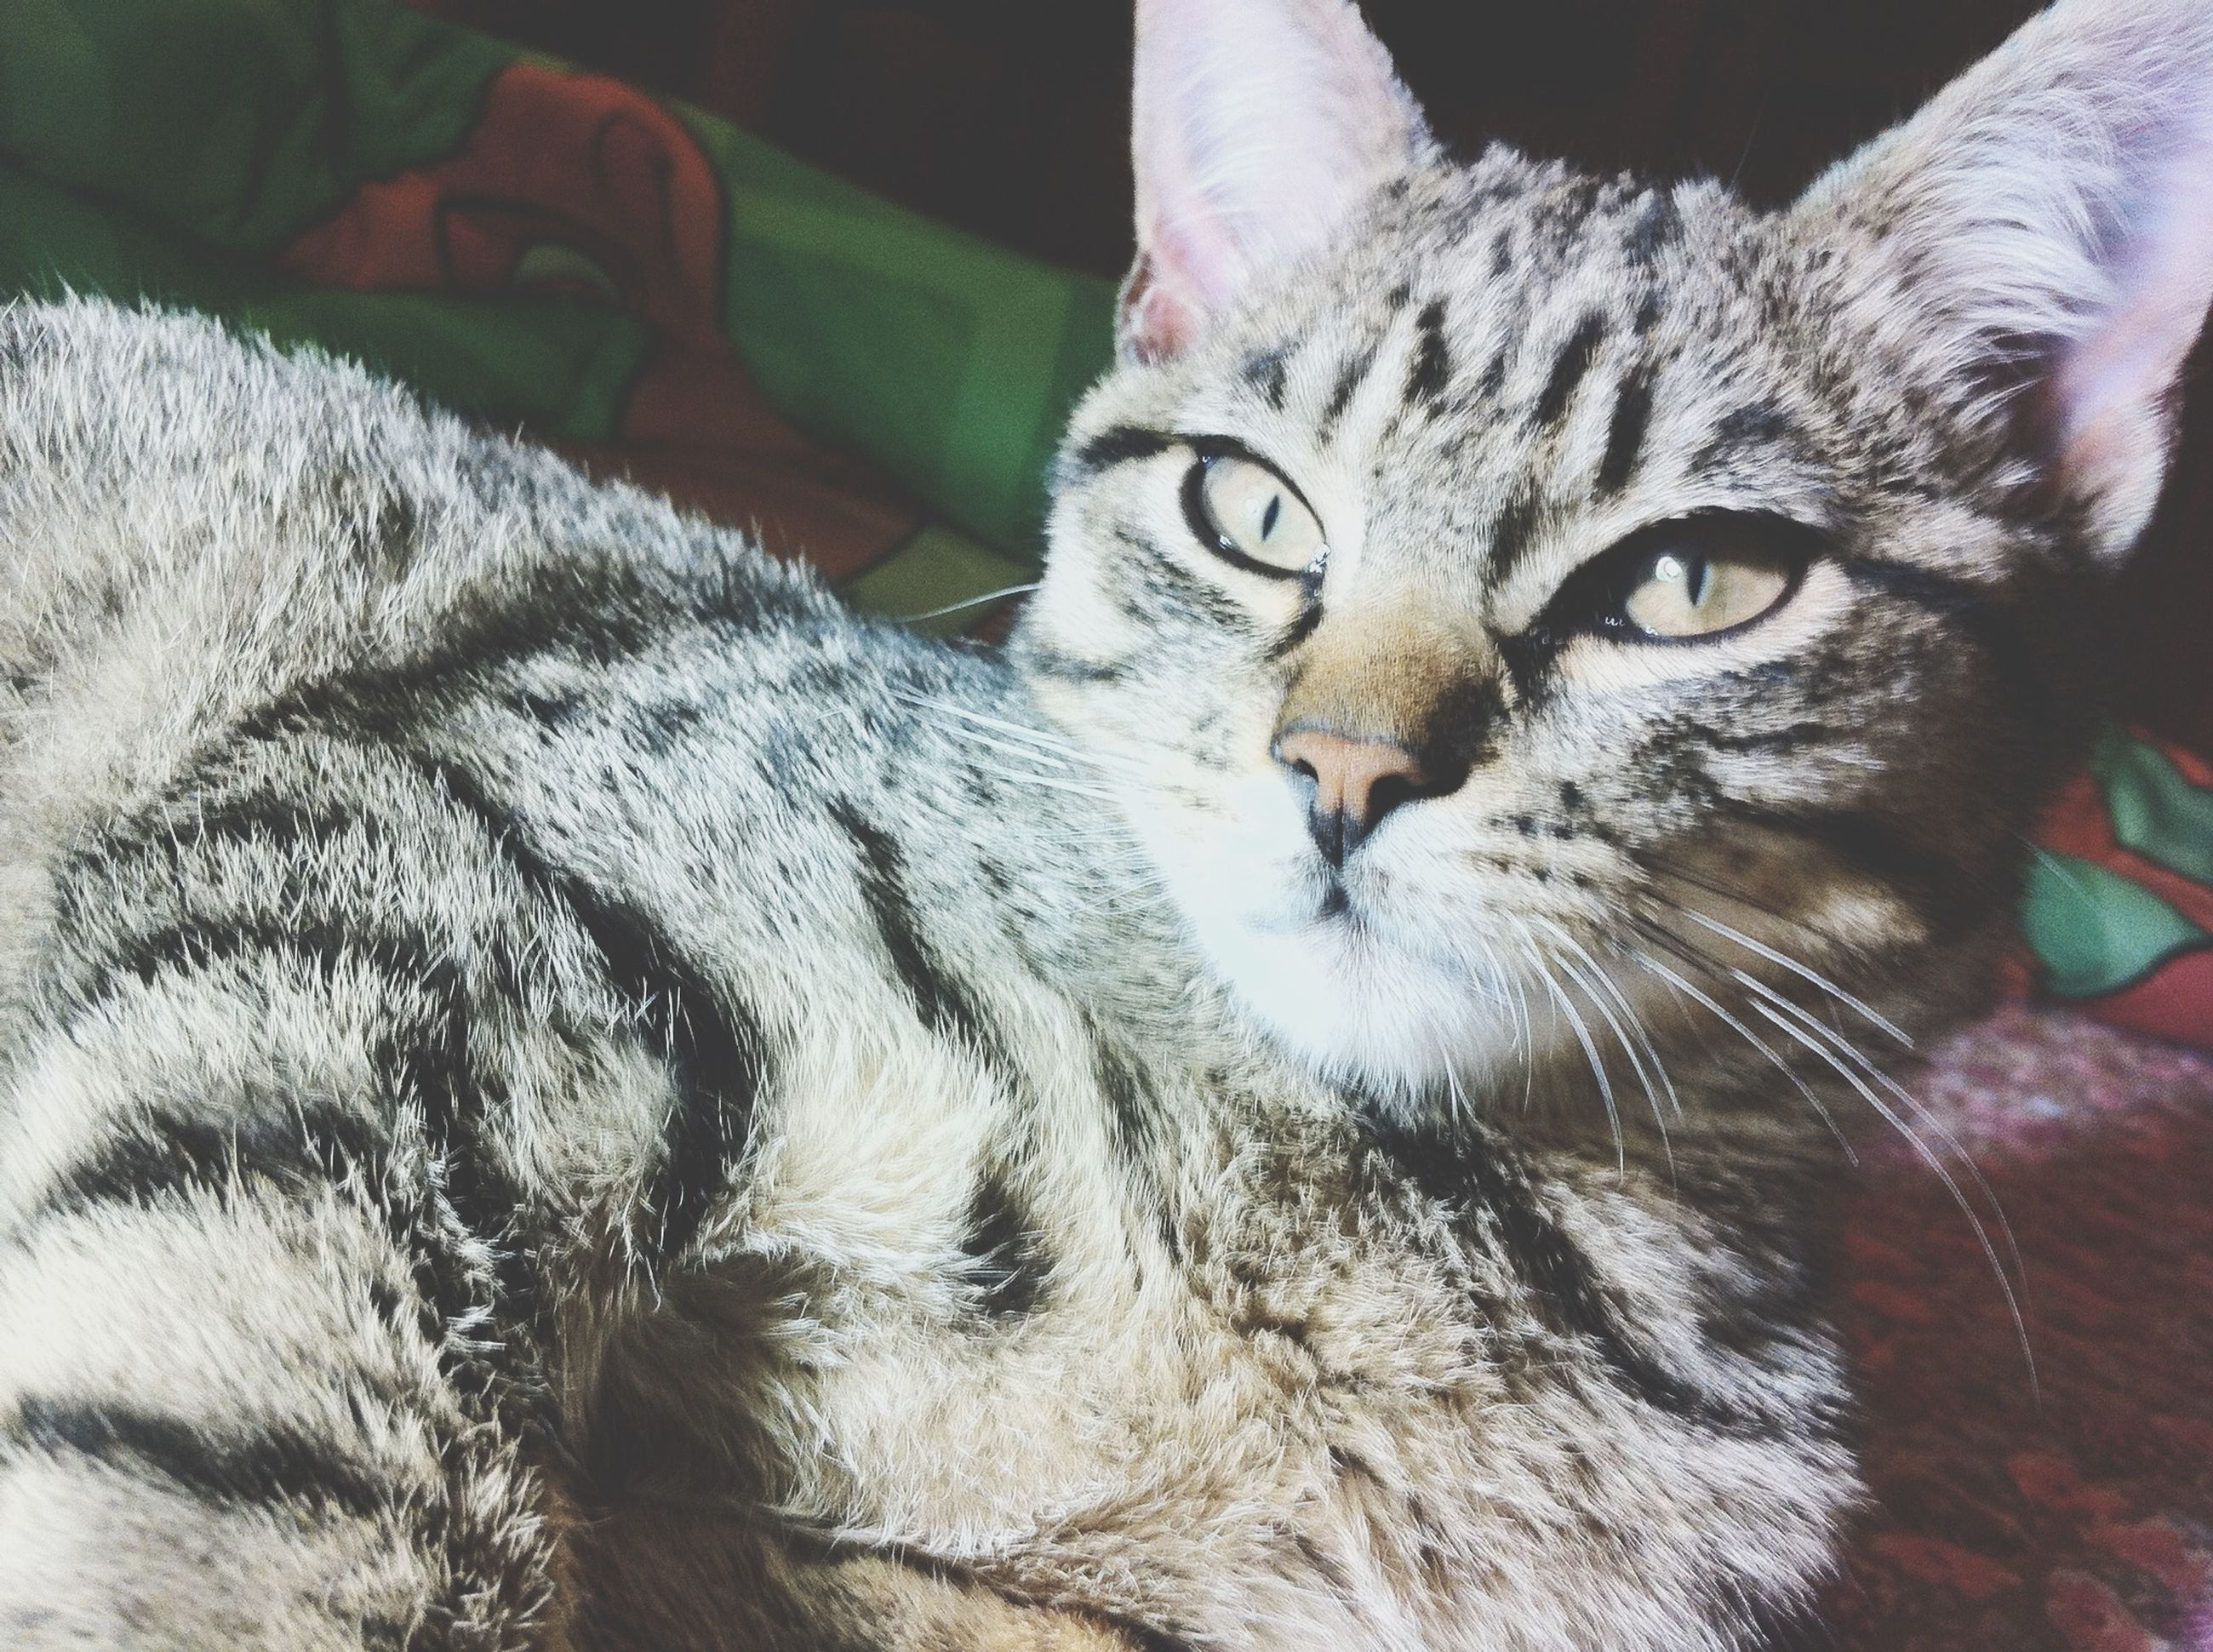 domestic cat, cat, pets, domestic animals, animal themes, one animal, feline, indoors, mammal, whisker, relaxation, portrait, looking at camera, lying down, close-up, resting, bed, animal head, home interior, high angle view